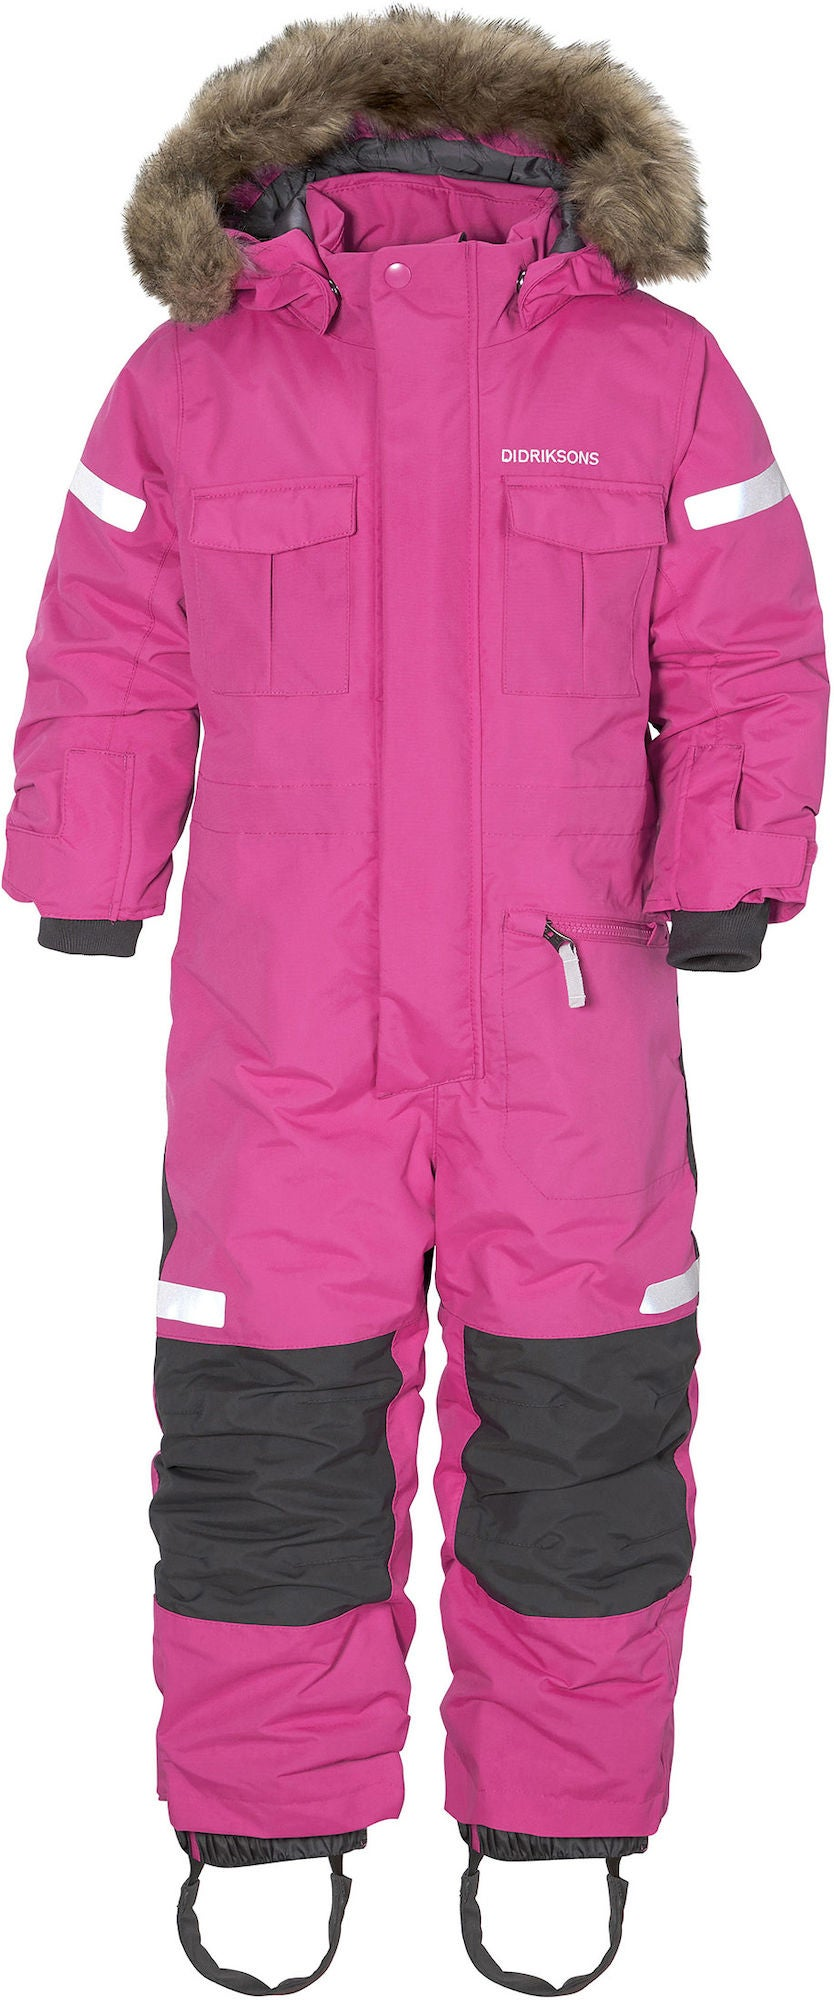 Didriksons Migisi Overall Plastic Pink 120